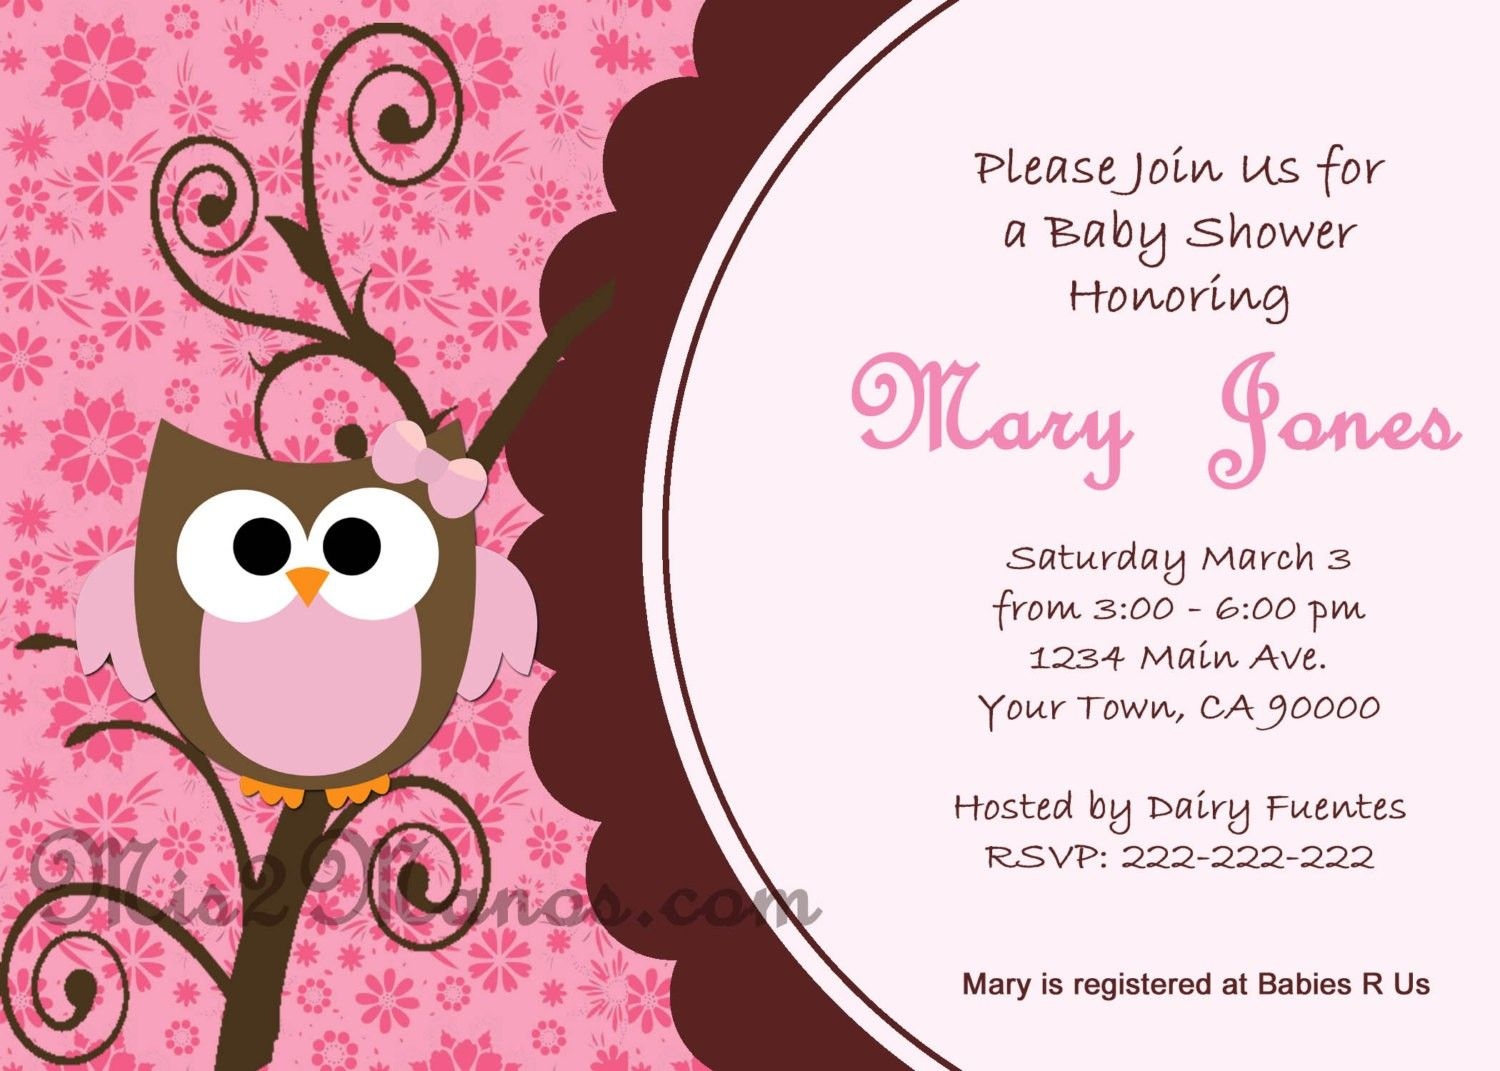 Baby Shower Invitations Hot Pink Owl Baby Shower Invitations ...